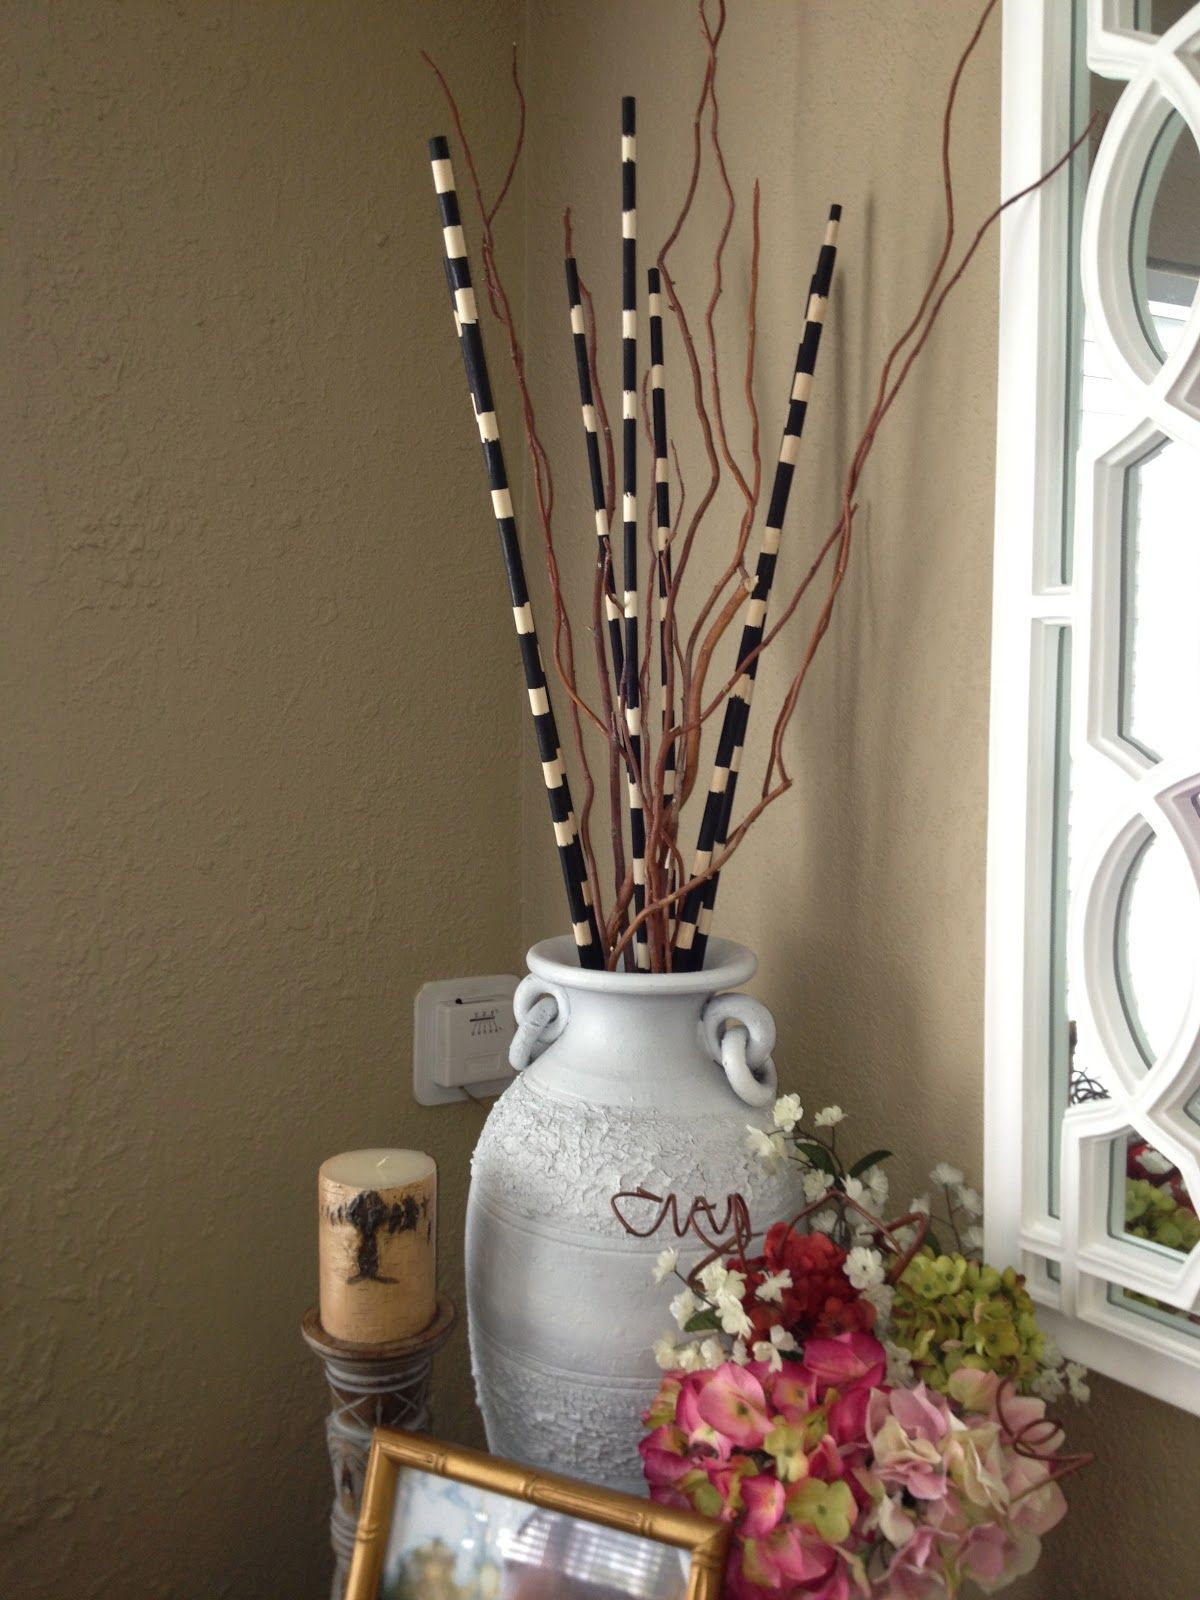 Black And White Decorative Sticks Lets Get Those Turkish Vases